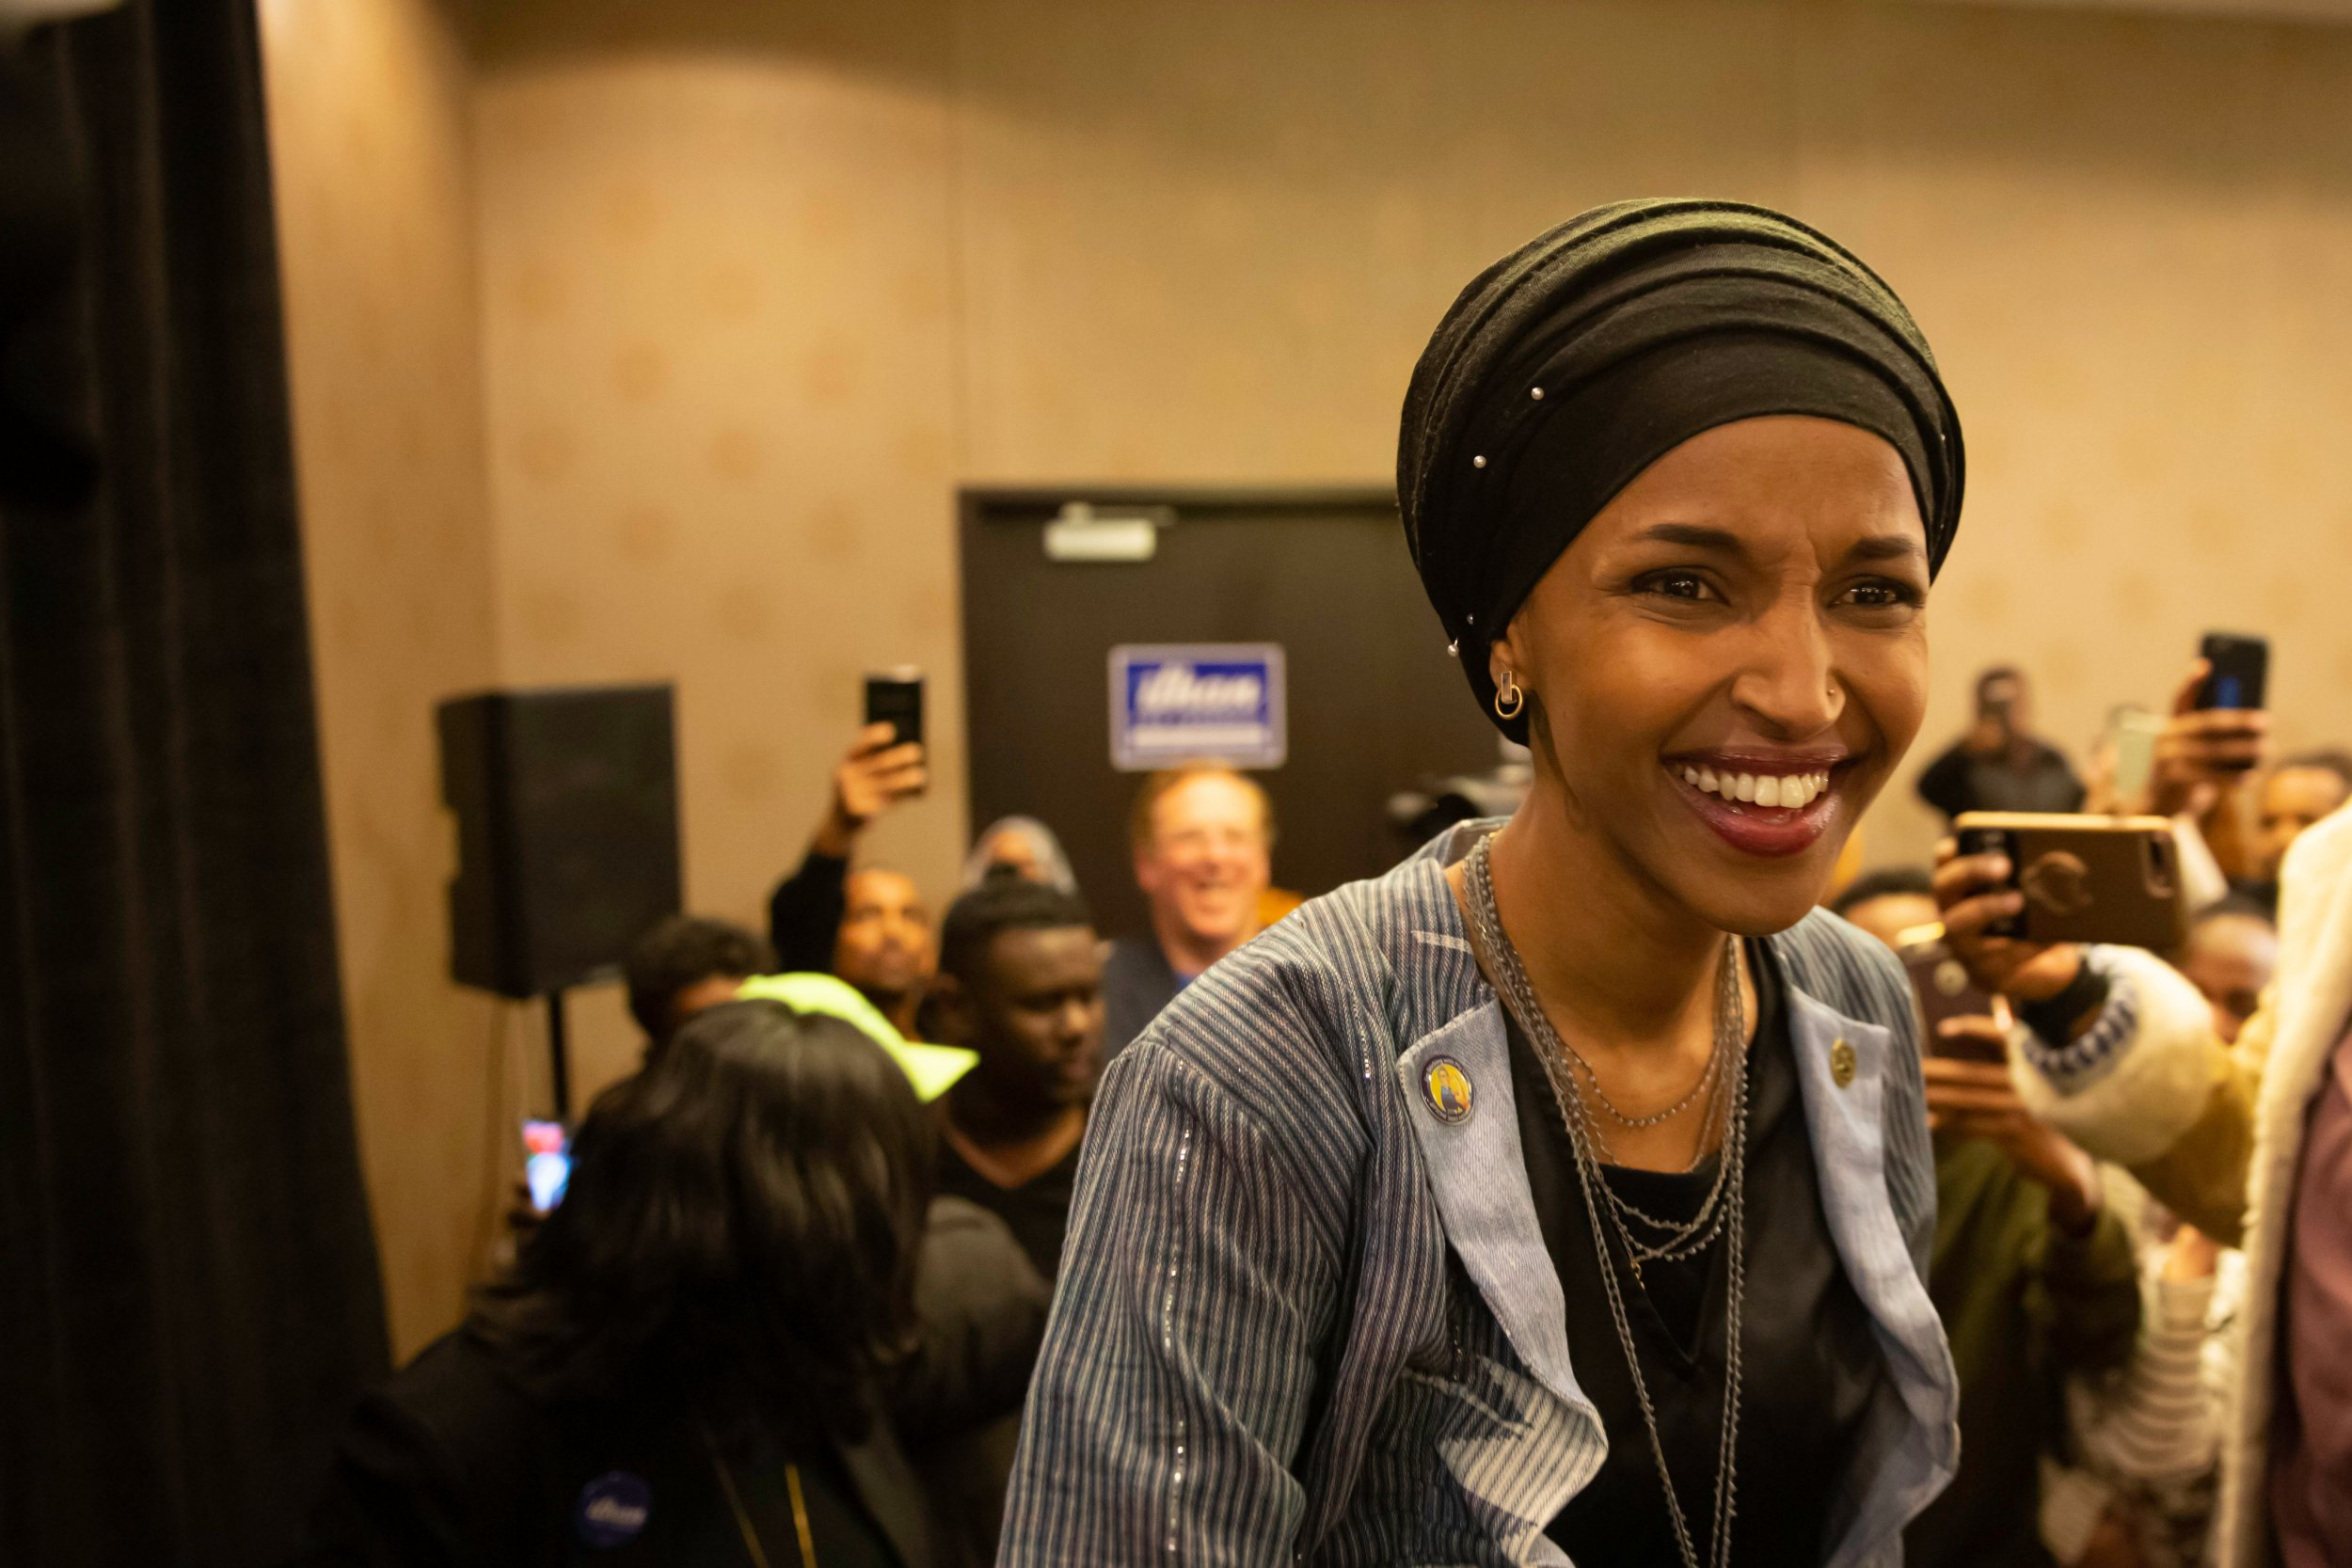 Ilhan Omar, newly elected to the U.S. House of Representatives on the Democratic ticket,??arrives for her victory party on election night in Minneapolis, Minnesota on November 6, 2018. - US voters elected two Muslim women, both Democrats, to Congress on November 6, 2018, marking a historic first in a country where anti-Muslim rhetoric has been on the rise, American networks reported. Ilhan Omar, a Somali refugee, won a House seat in a heavily-Democratic district in the Midwestern state of Minnesota, where she will succeed Keith Ellison, himself the first Muslim elected to Congress. (Photo by Kerem Yucel / AFP)KEREM YUCEL/AFP/Getty Images